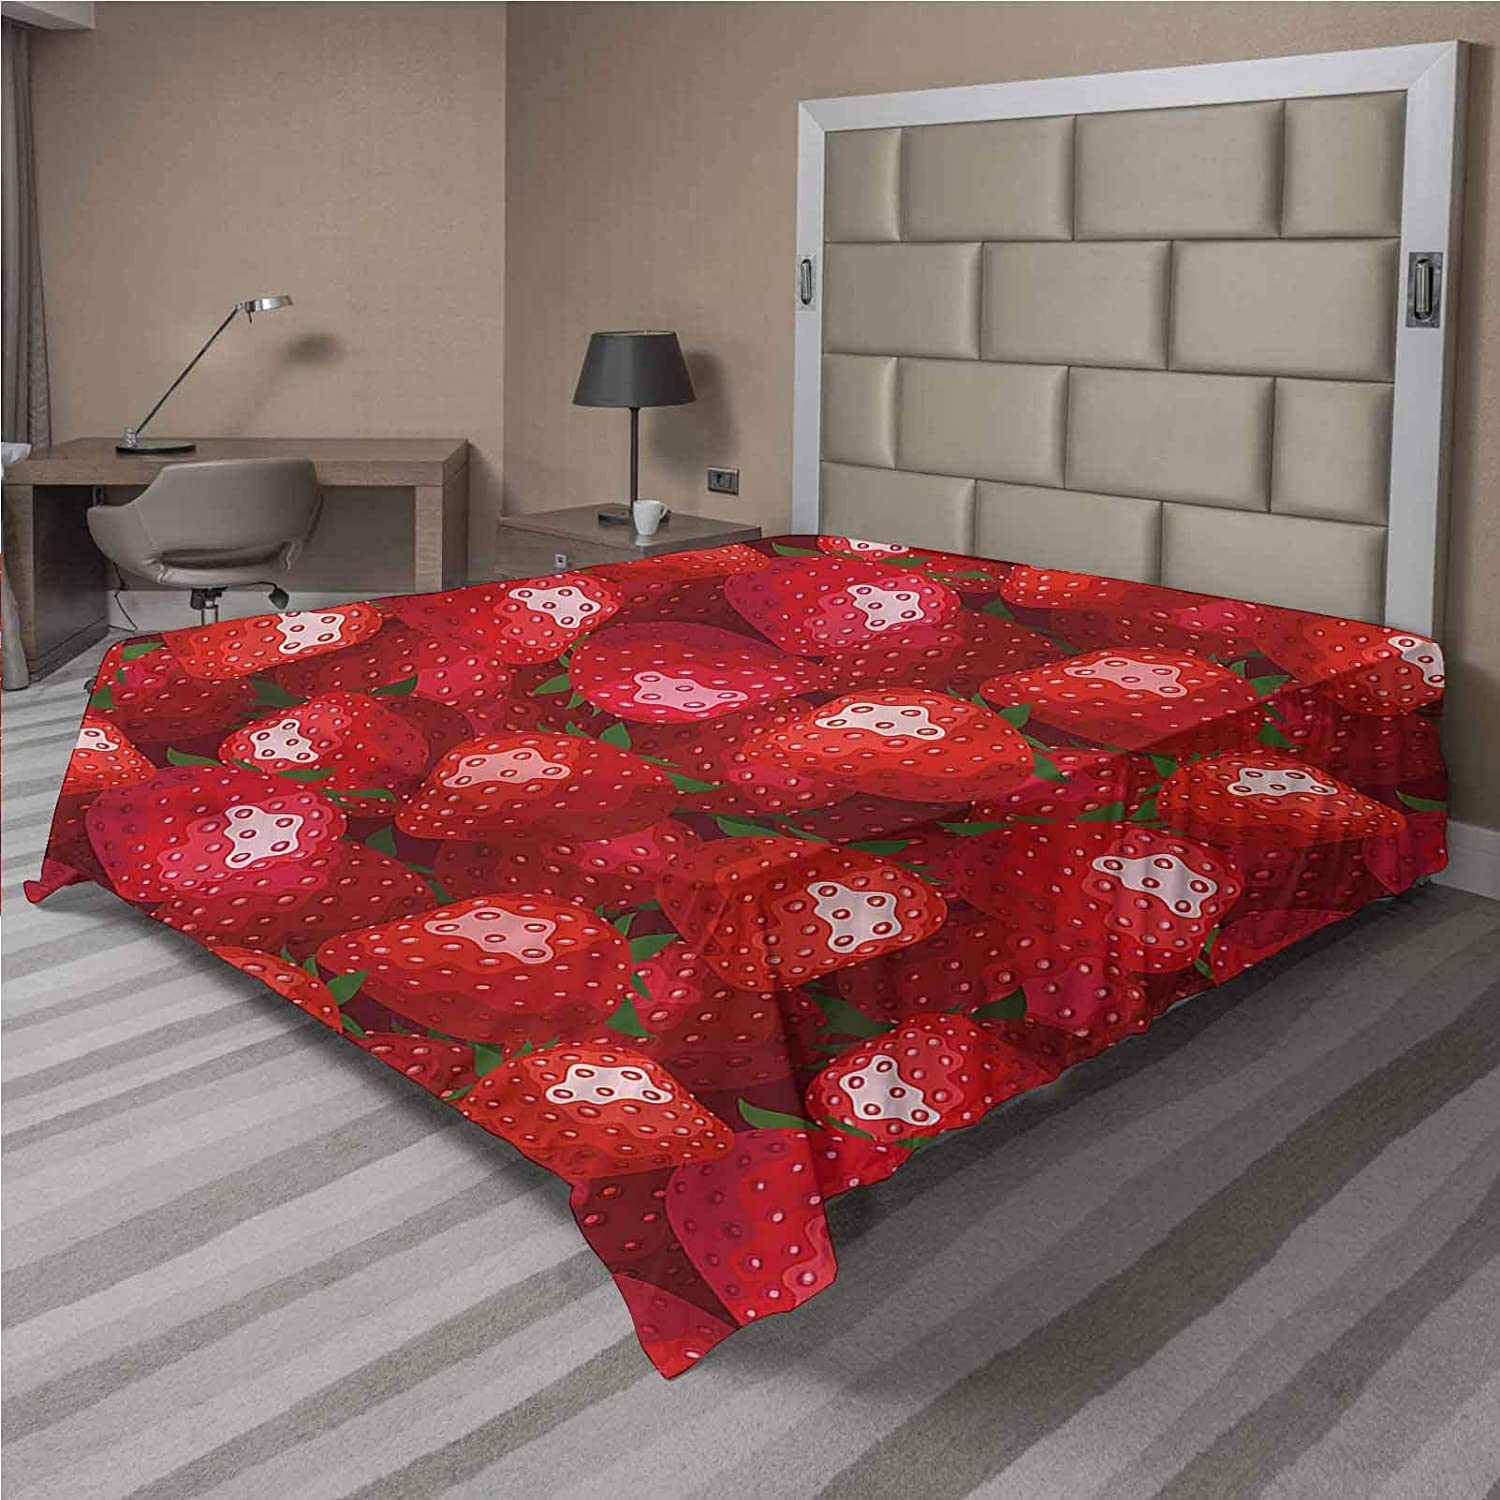 LCGGDB Red Flat Cash special price Top Sheet Comforta Fruits Strawberries Soft Be super welcome Ripe